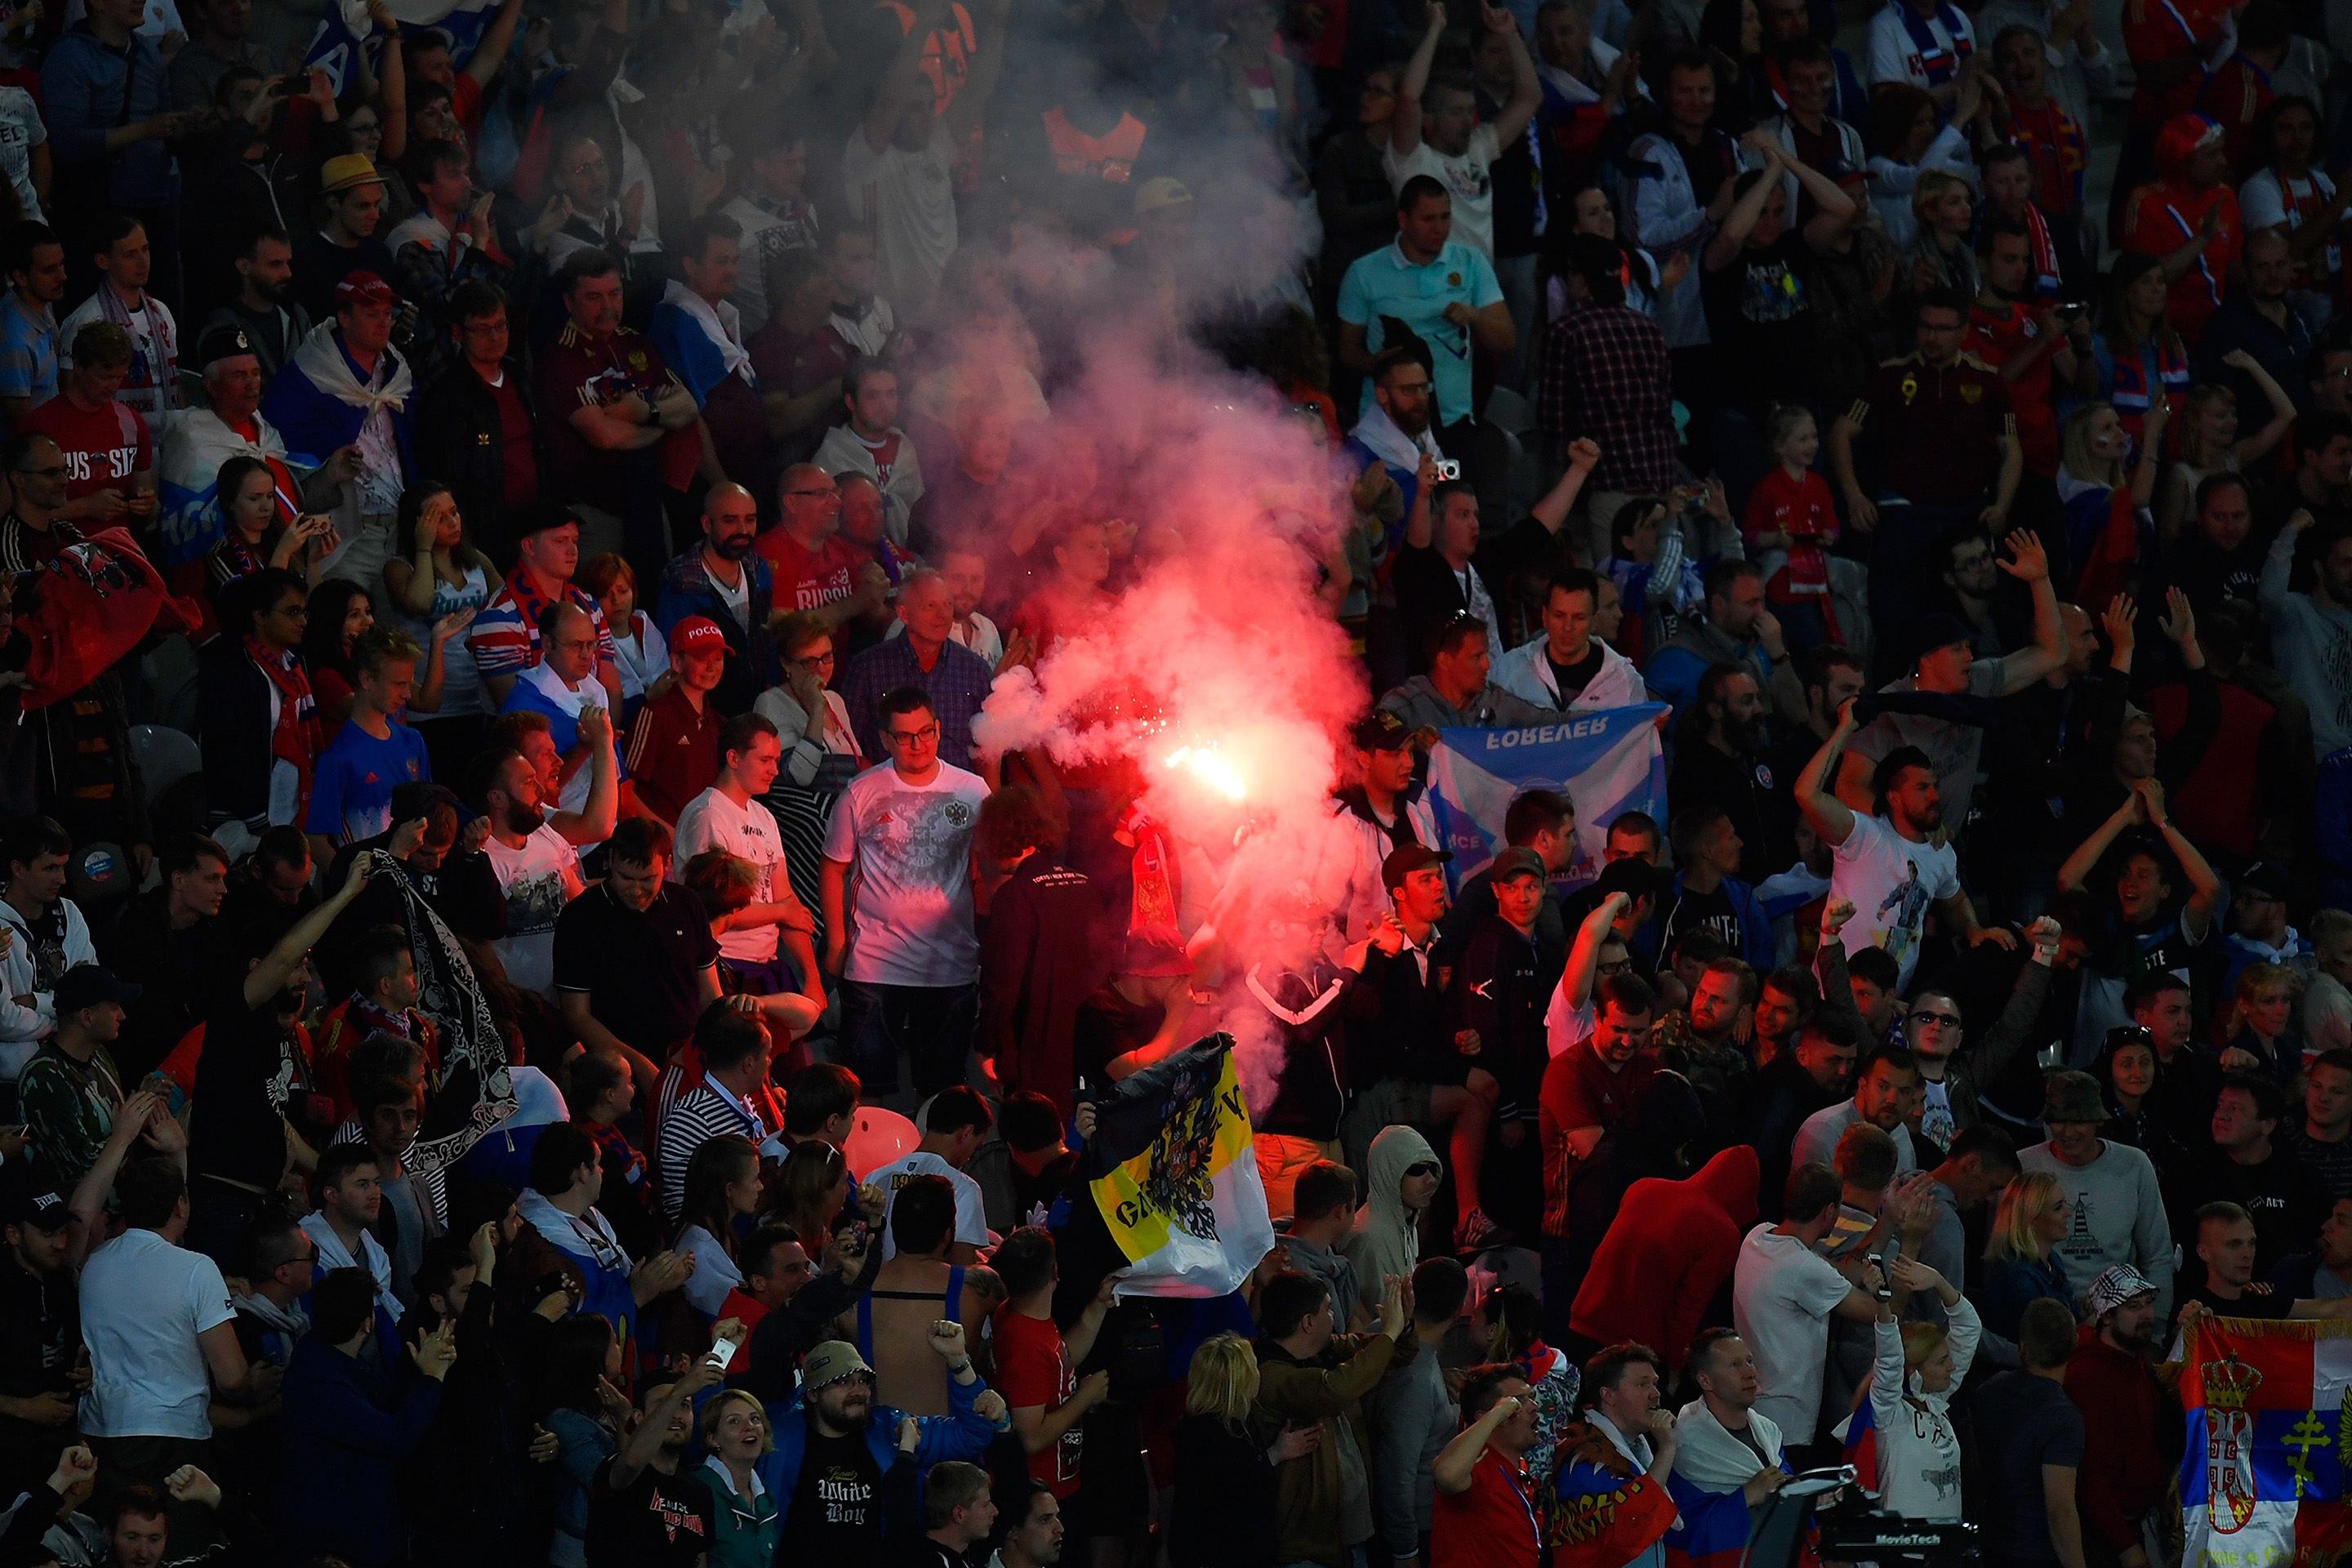 russia fans, russia fans flare, did russian fans do anything, russia fan violence